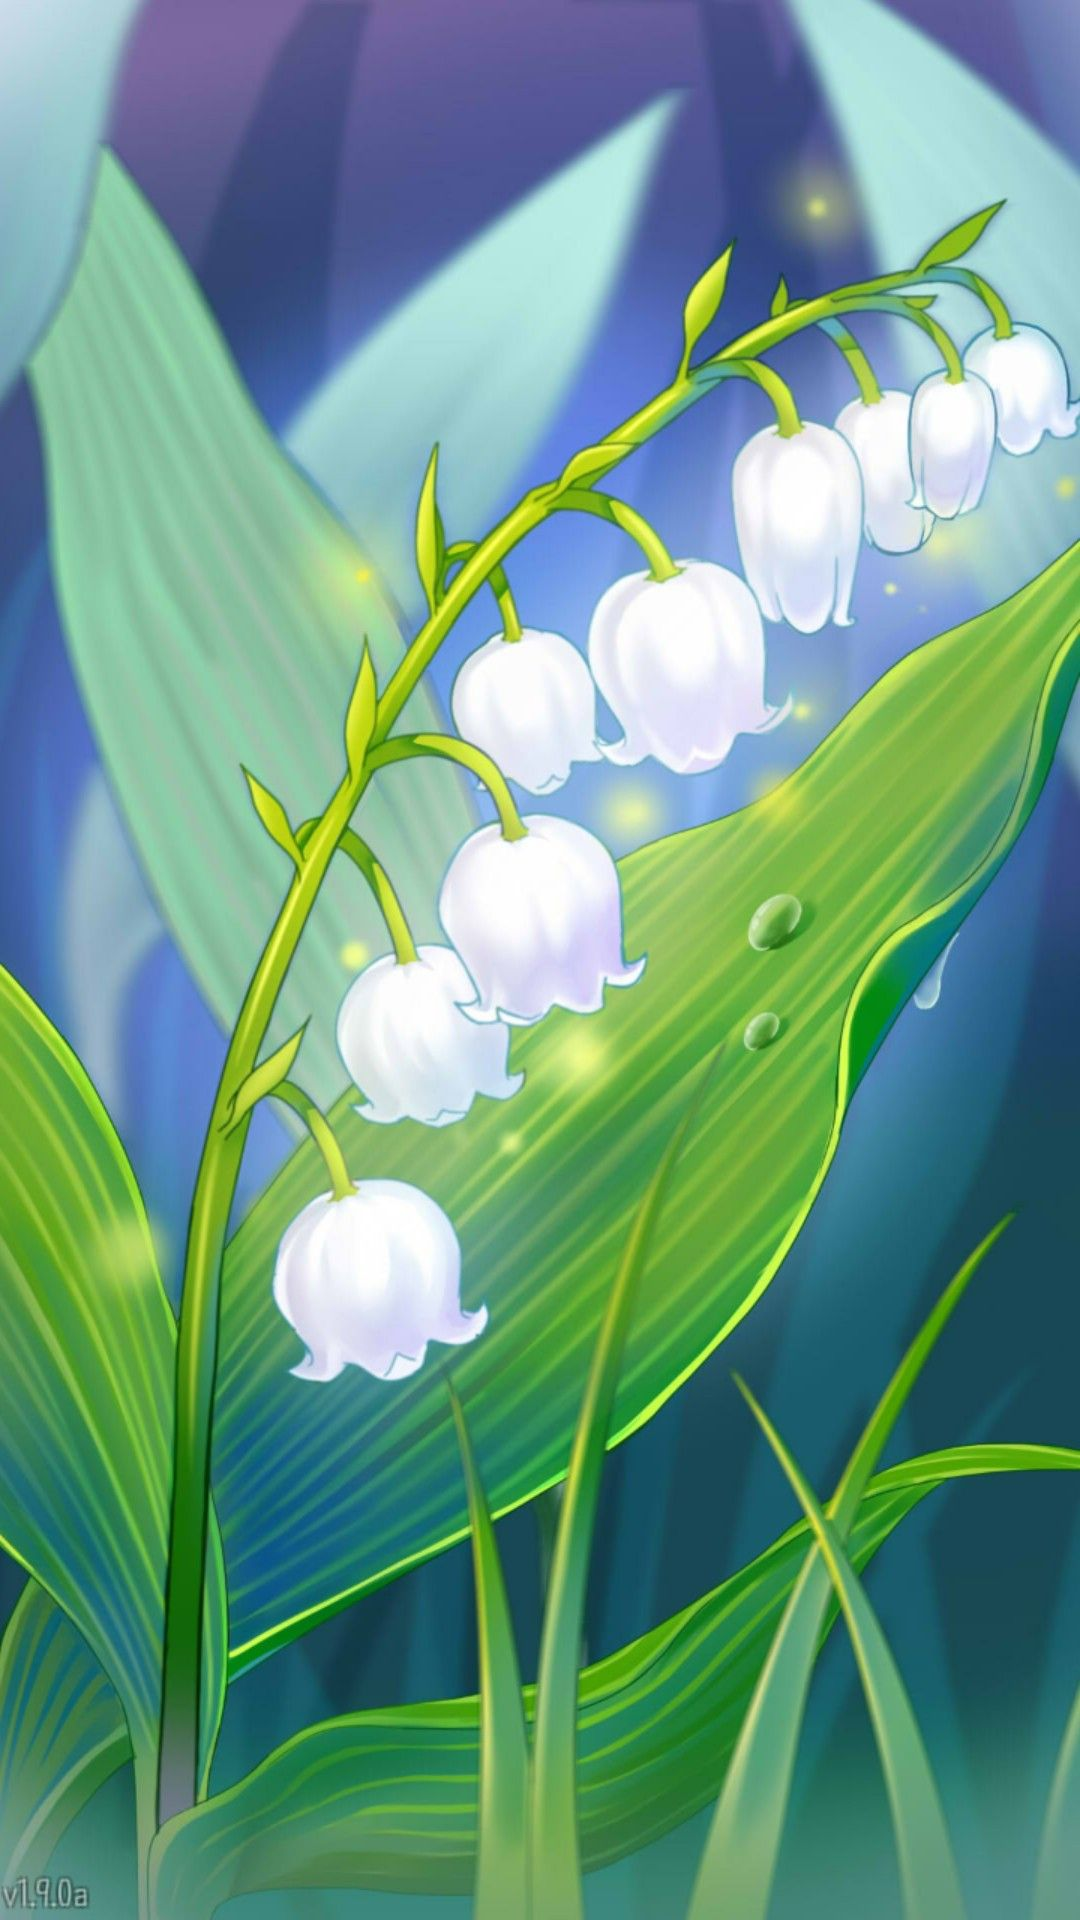 Ray's route. Lily of the Valley. Lily of the valley has